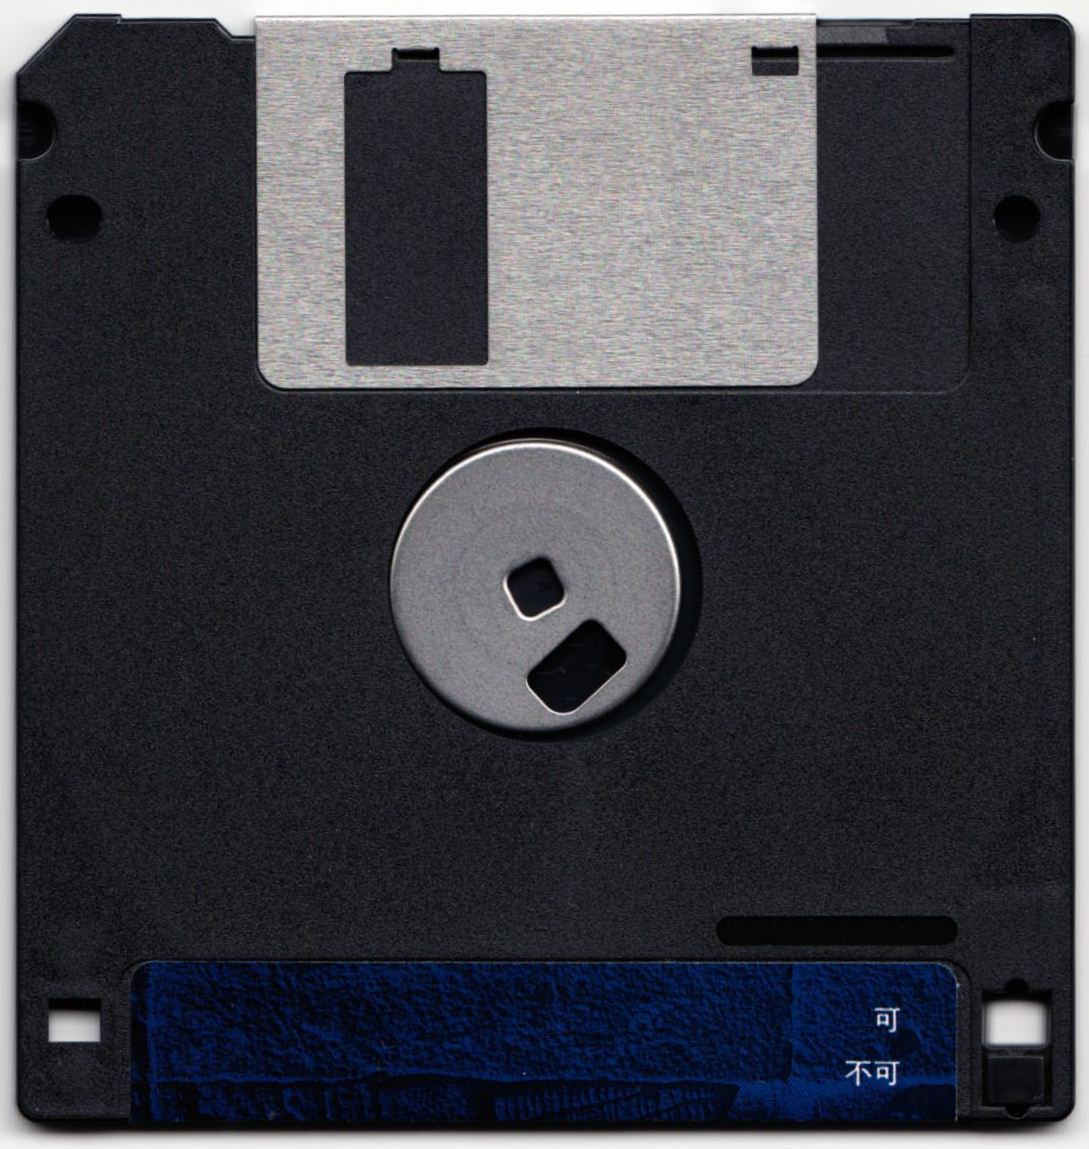 Game - Dungeon Master II - JP - PC-9821 - Startup Disk 3.5-inch - Back - Scan